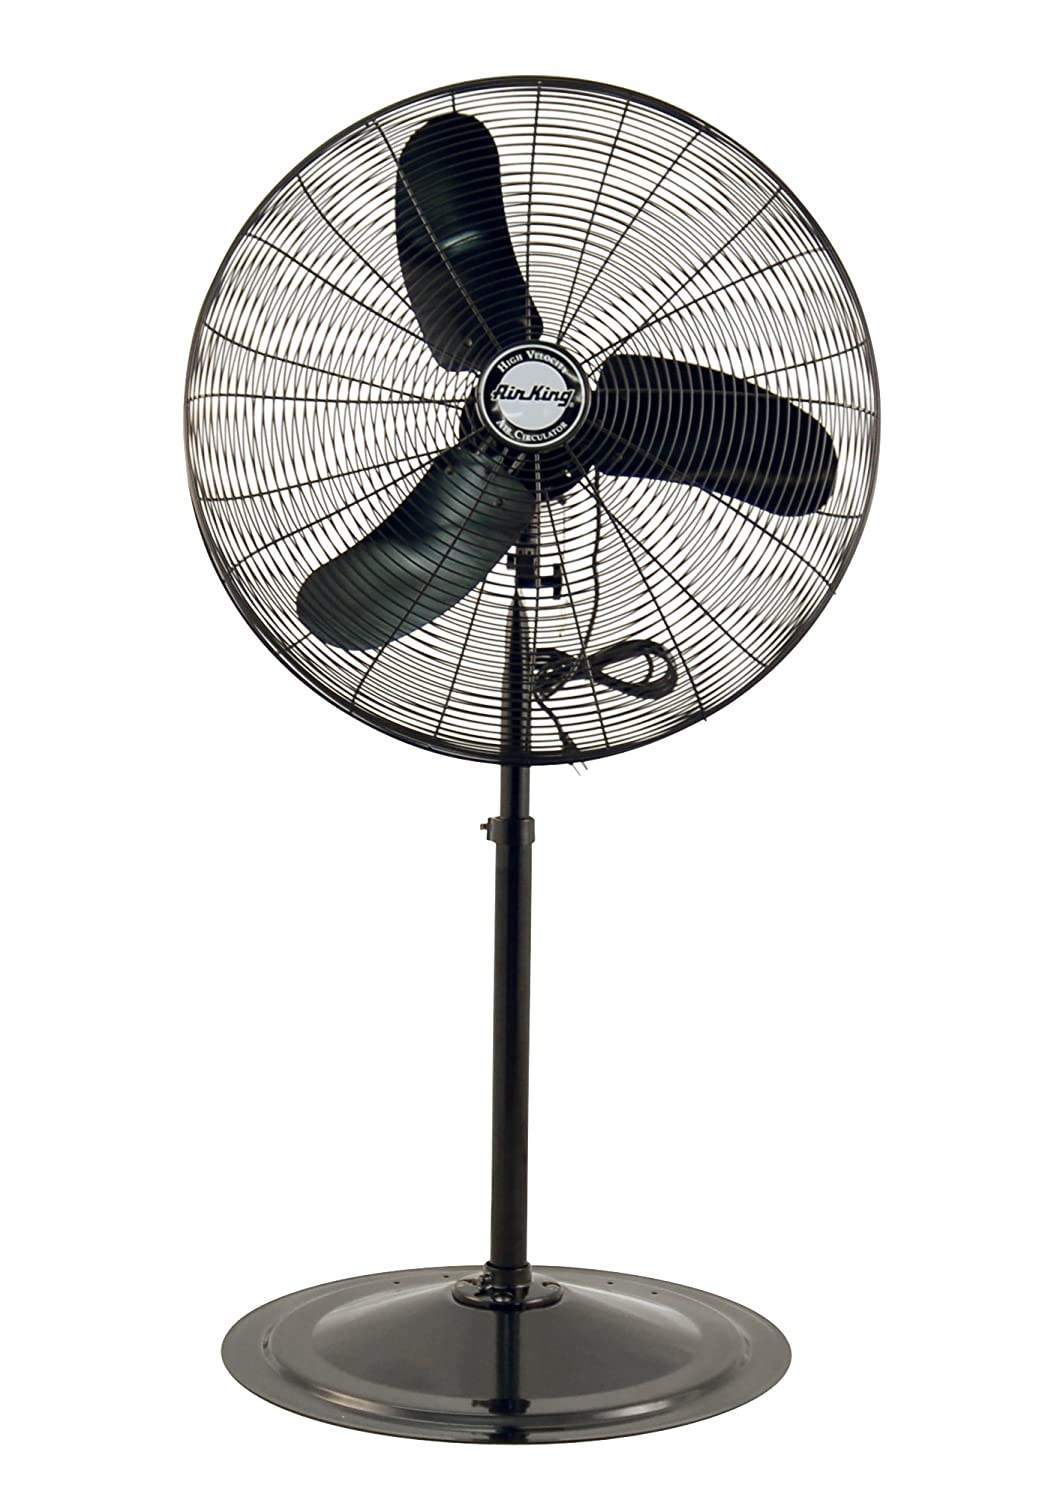 industrial pfnc oscillating appliances fans pedestal fan